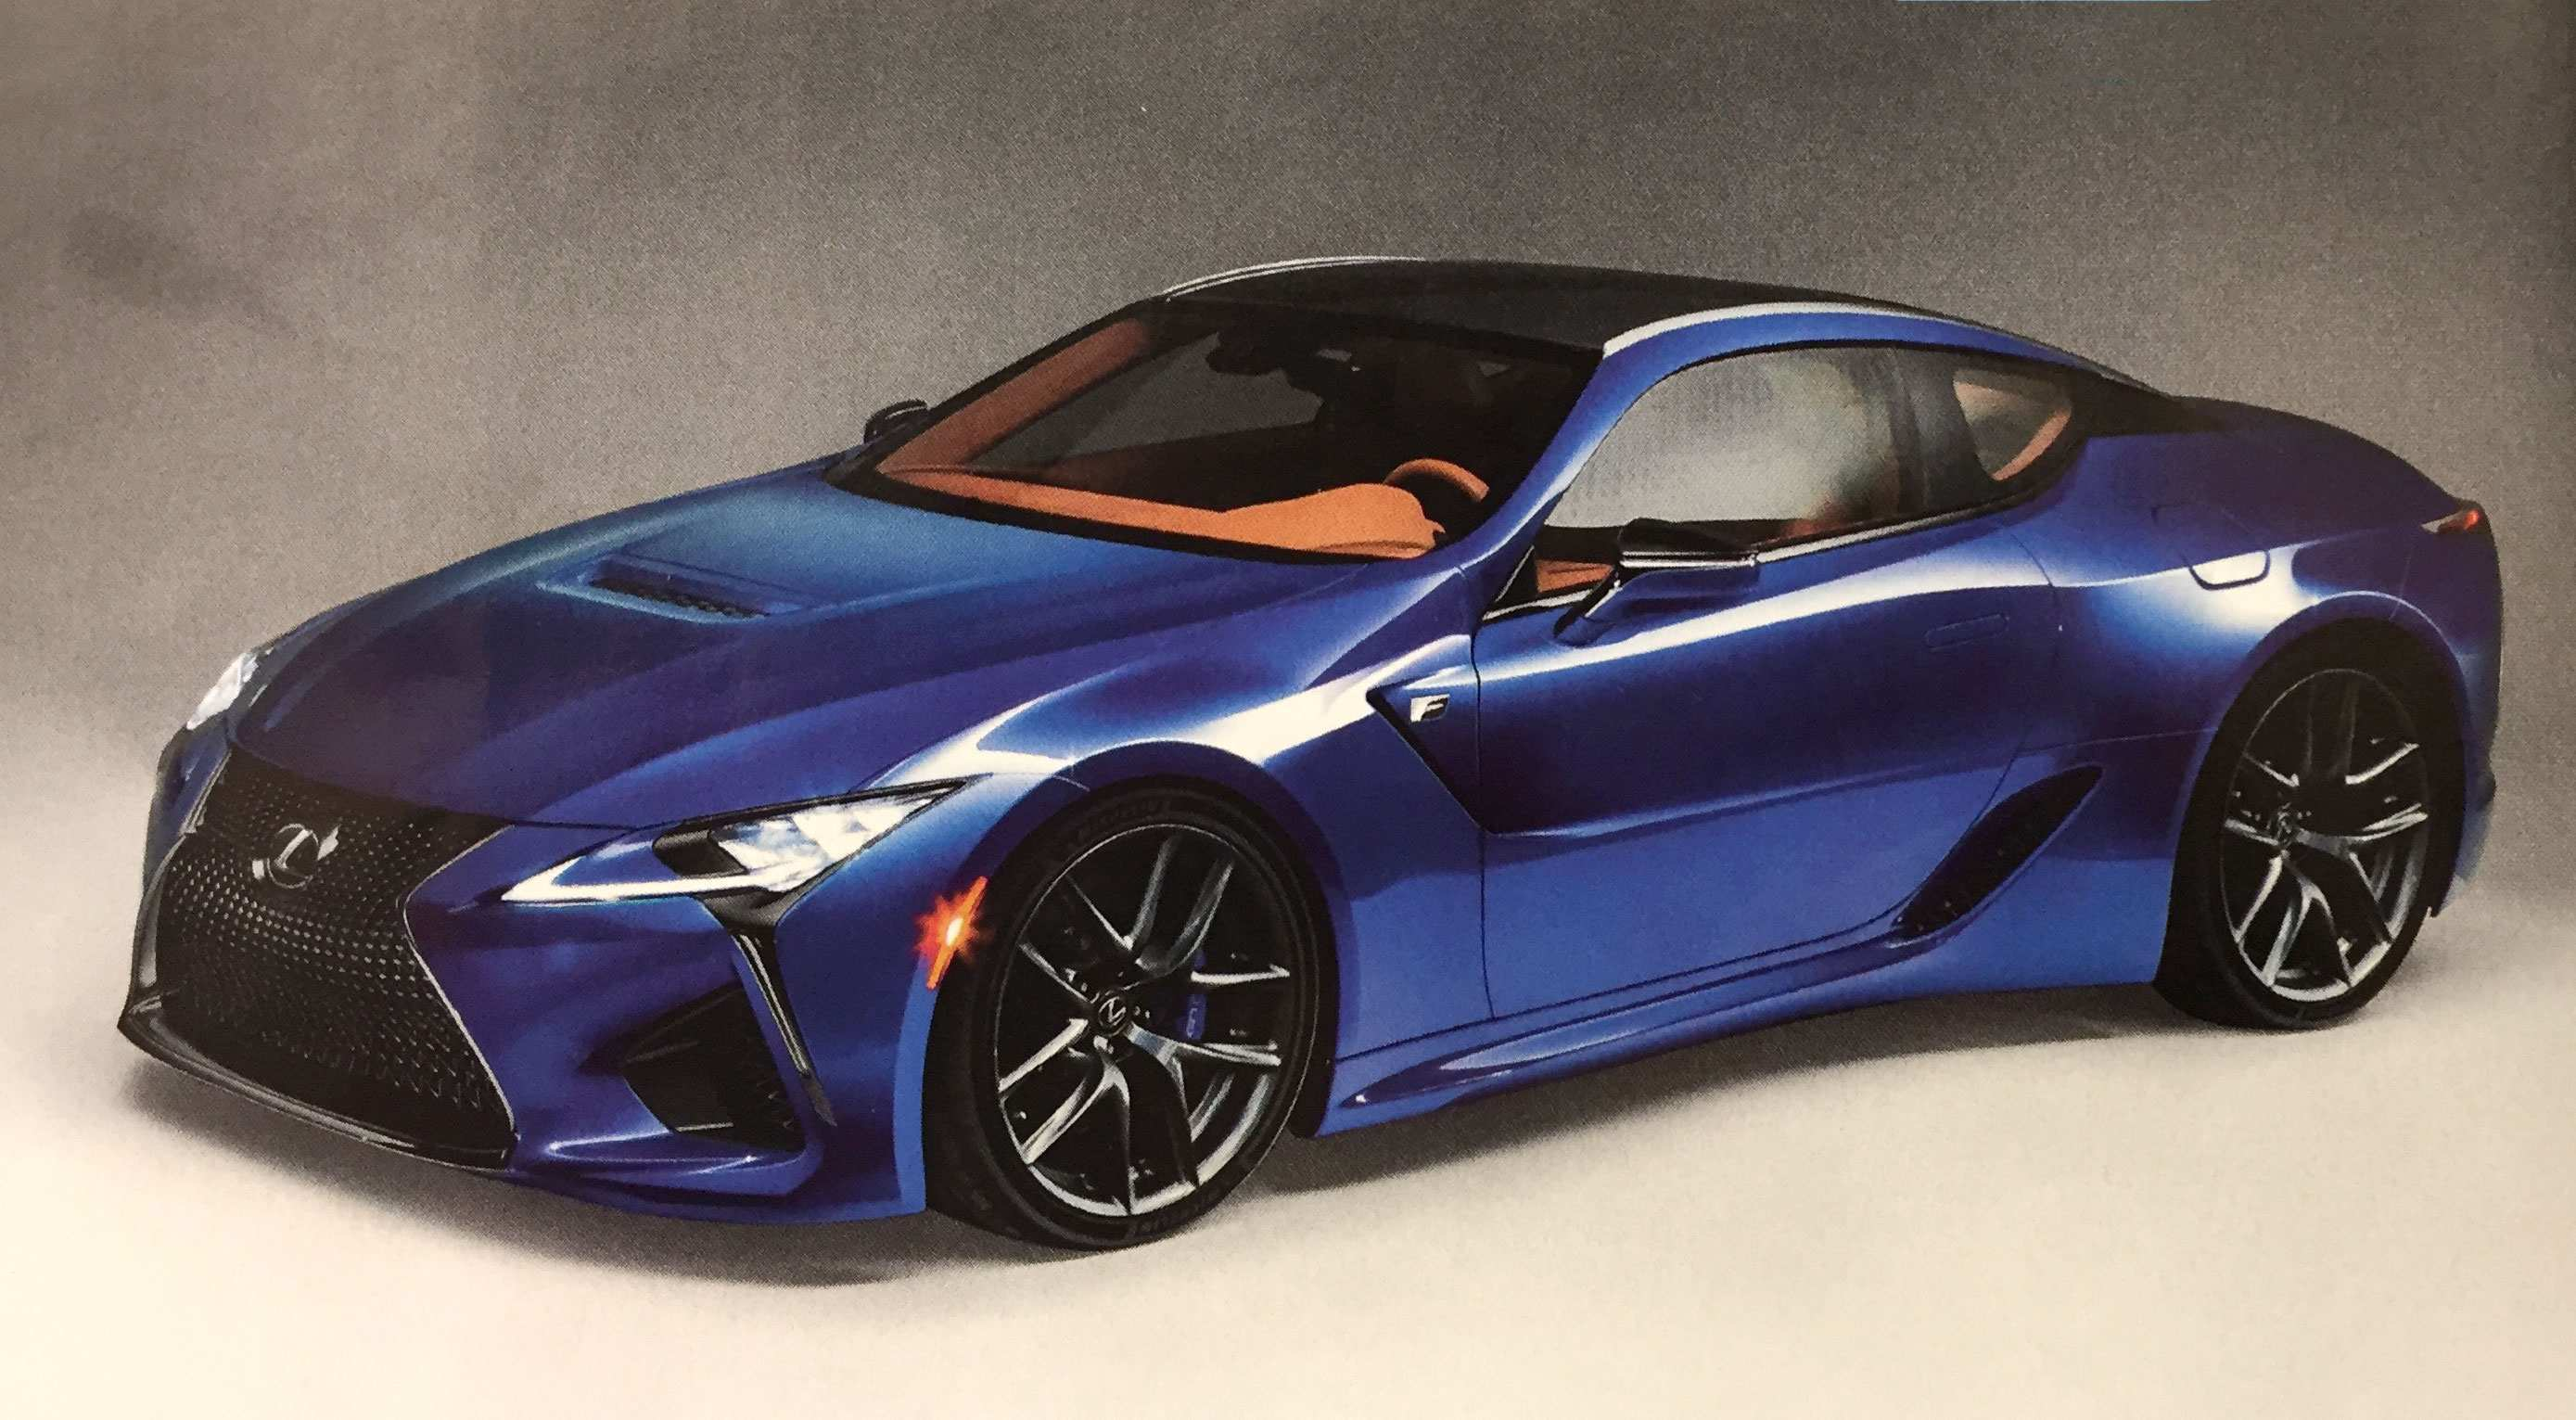 89 Concept of 2019 Lexus Lc F Prices by 2019 Lexus Lc F